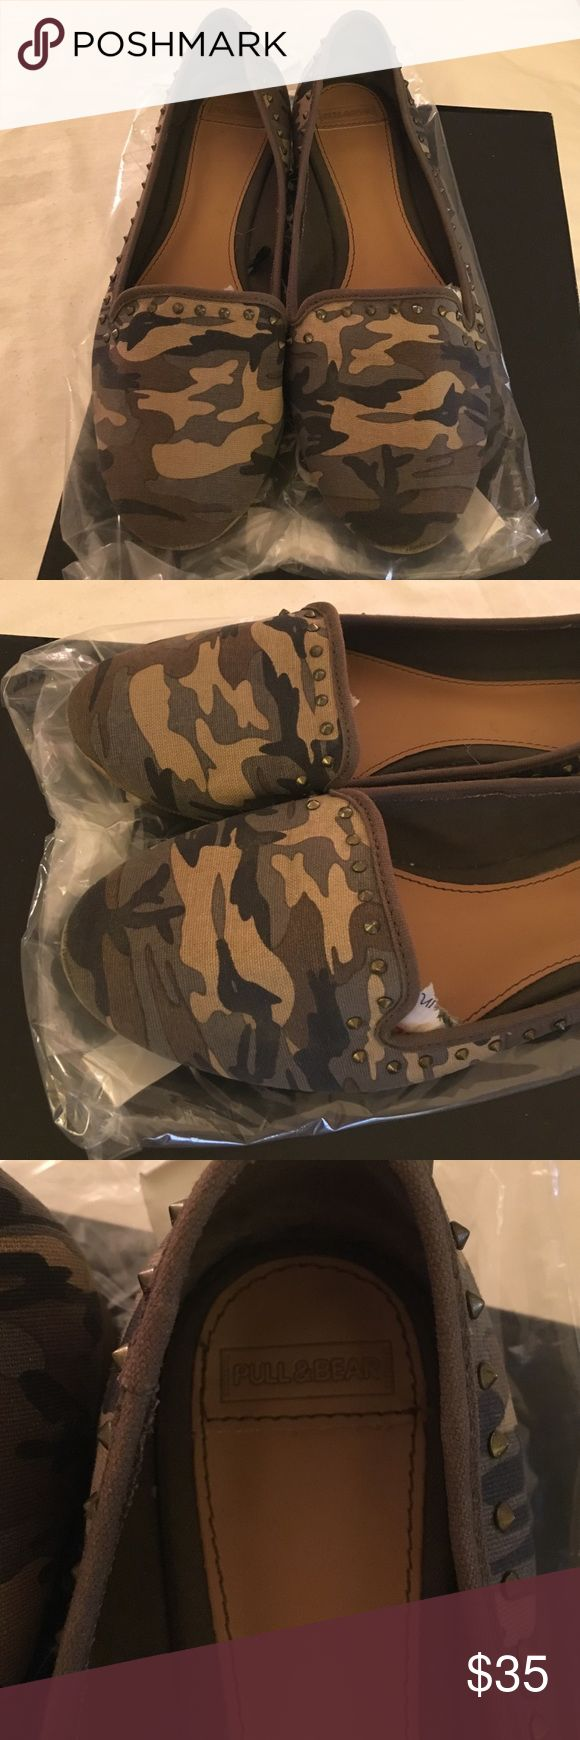 Zara's company PullBear military shoes Worn gently, militar design flats with studs Zara Shoes Flats & Loafers